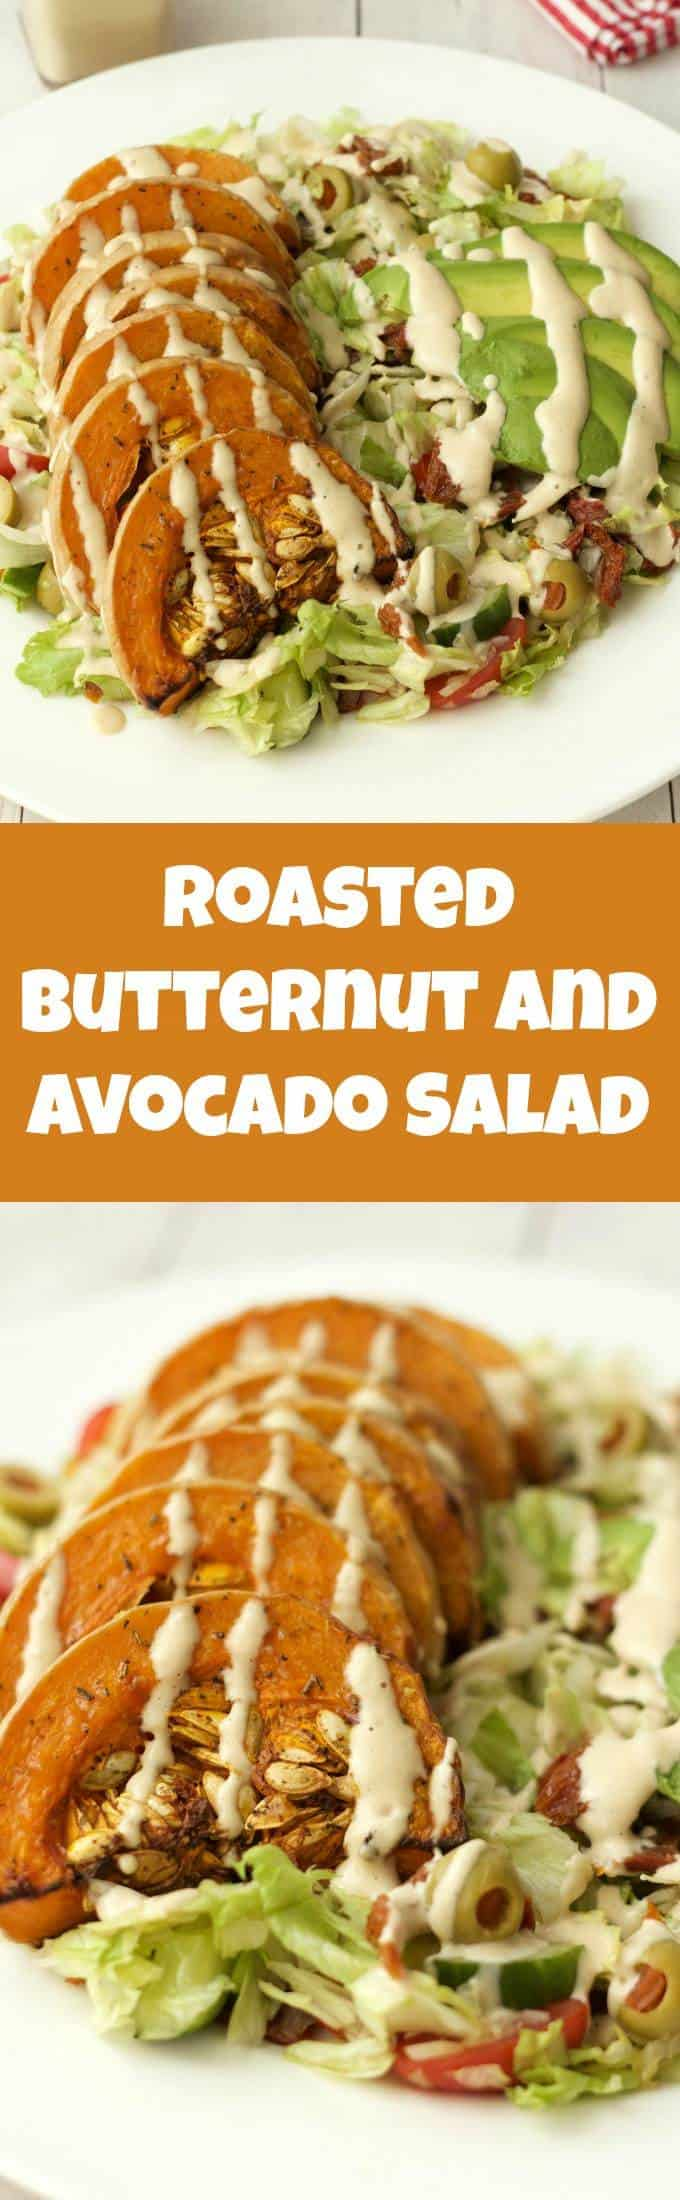 Roasted Butternut and Avocado Salad with Cashew Cream Dressing. This salad makes a satisfying and delicious main meal, and it's vegan and gluten-free! | lovingitvegan.com